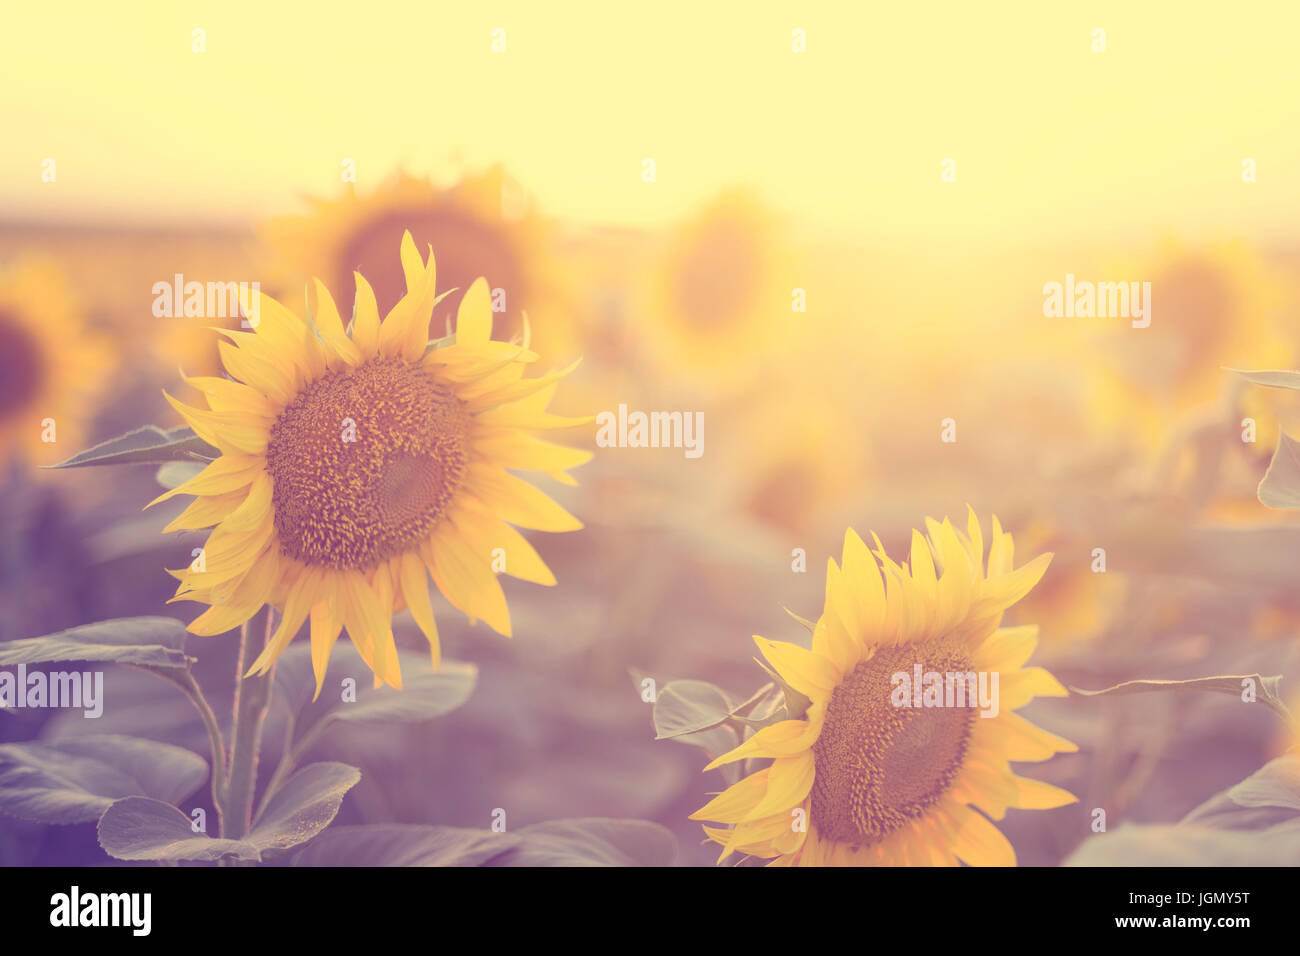 Sunflower field in summer sunset - Stock Image